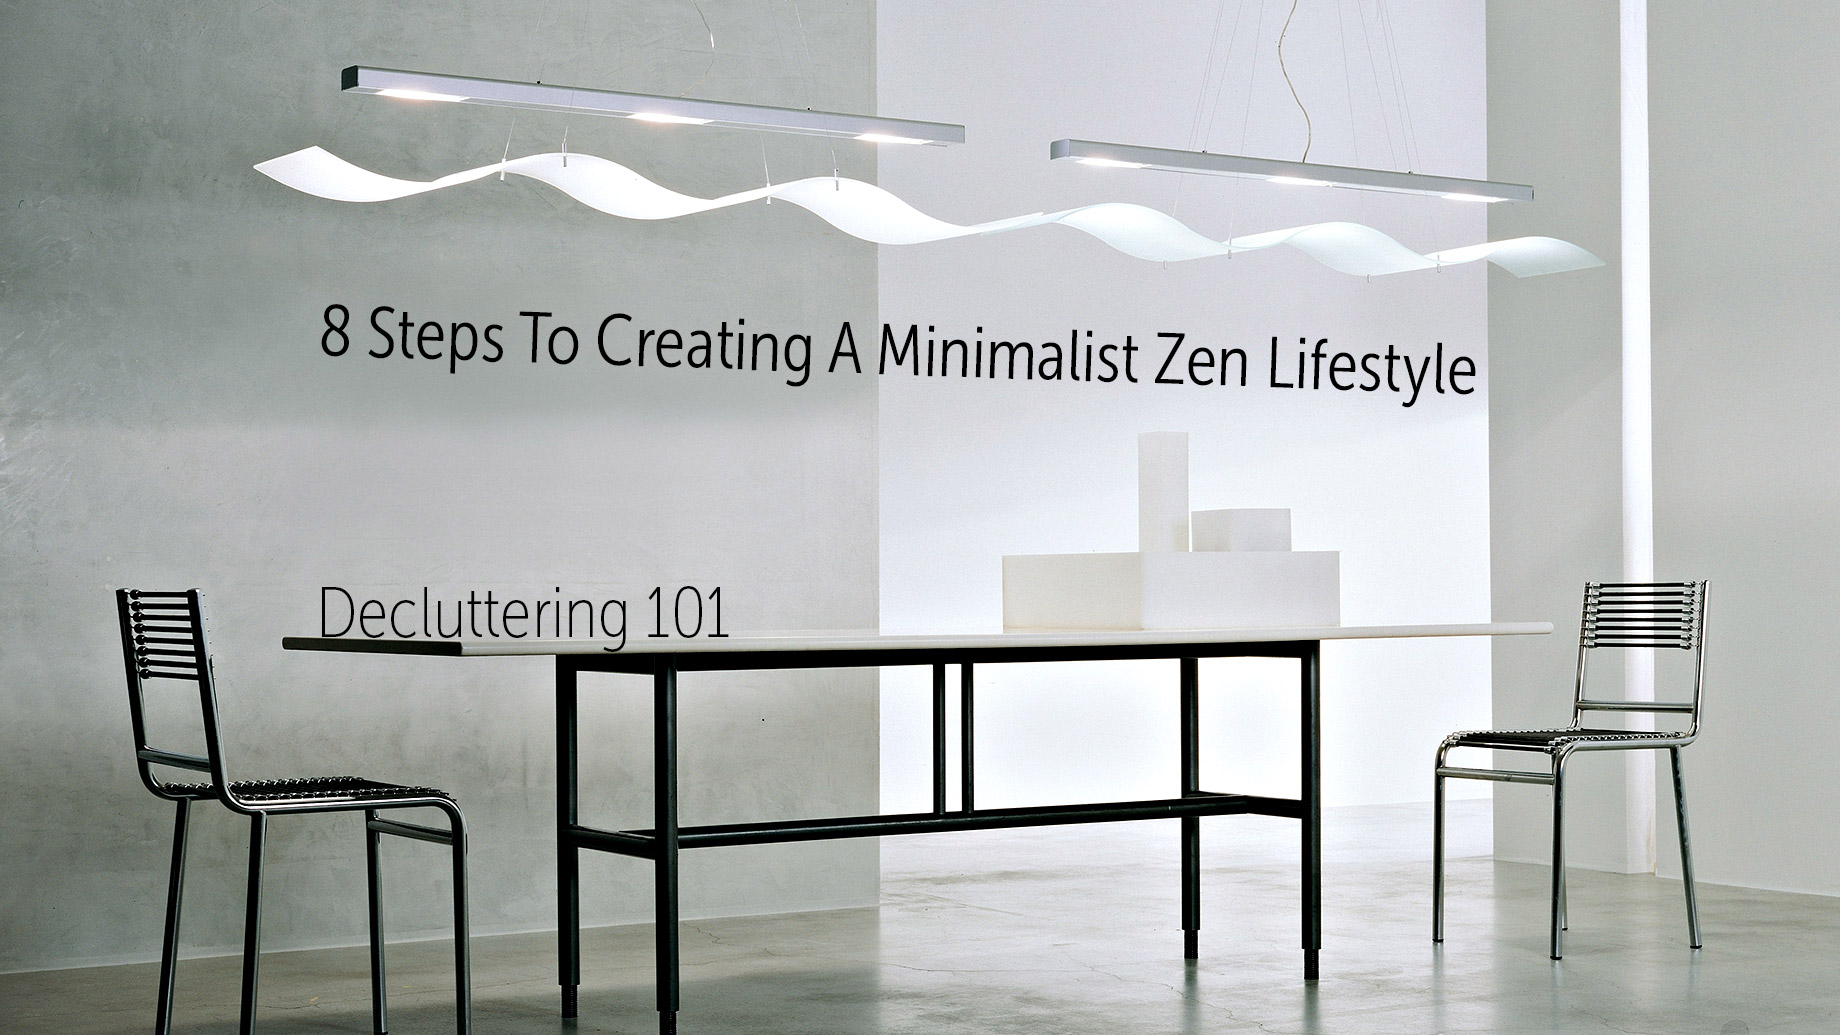 Decluttering 101 - 8 Steps To Creating A Minimalist Zen Lifestyle